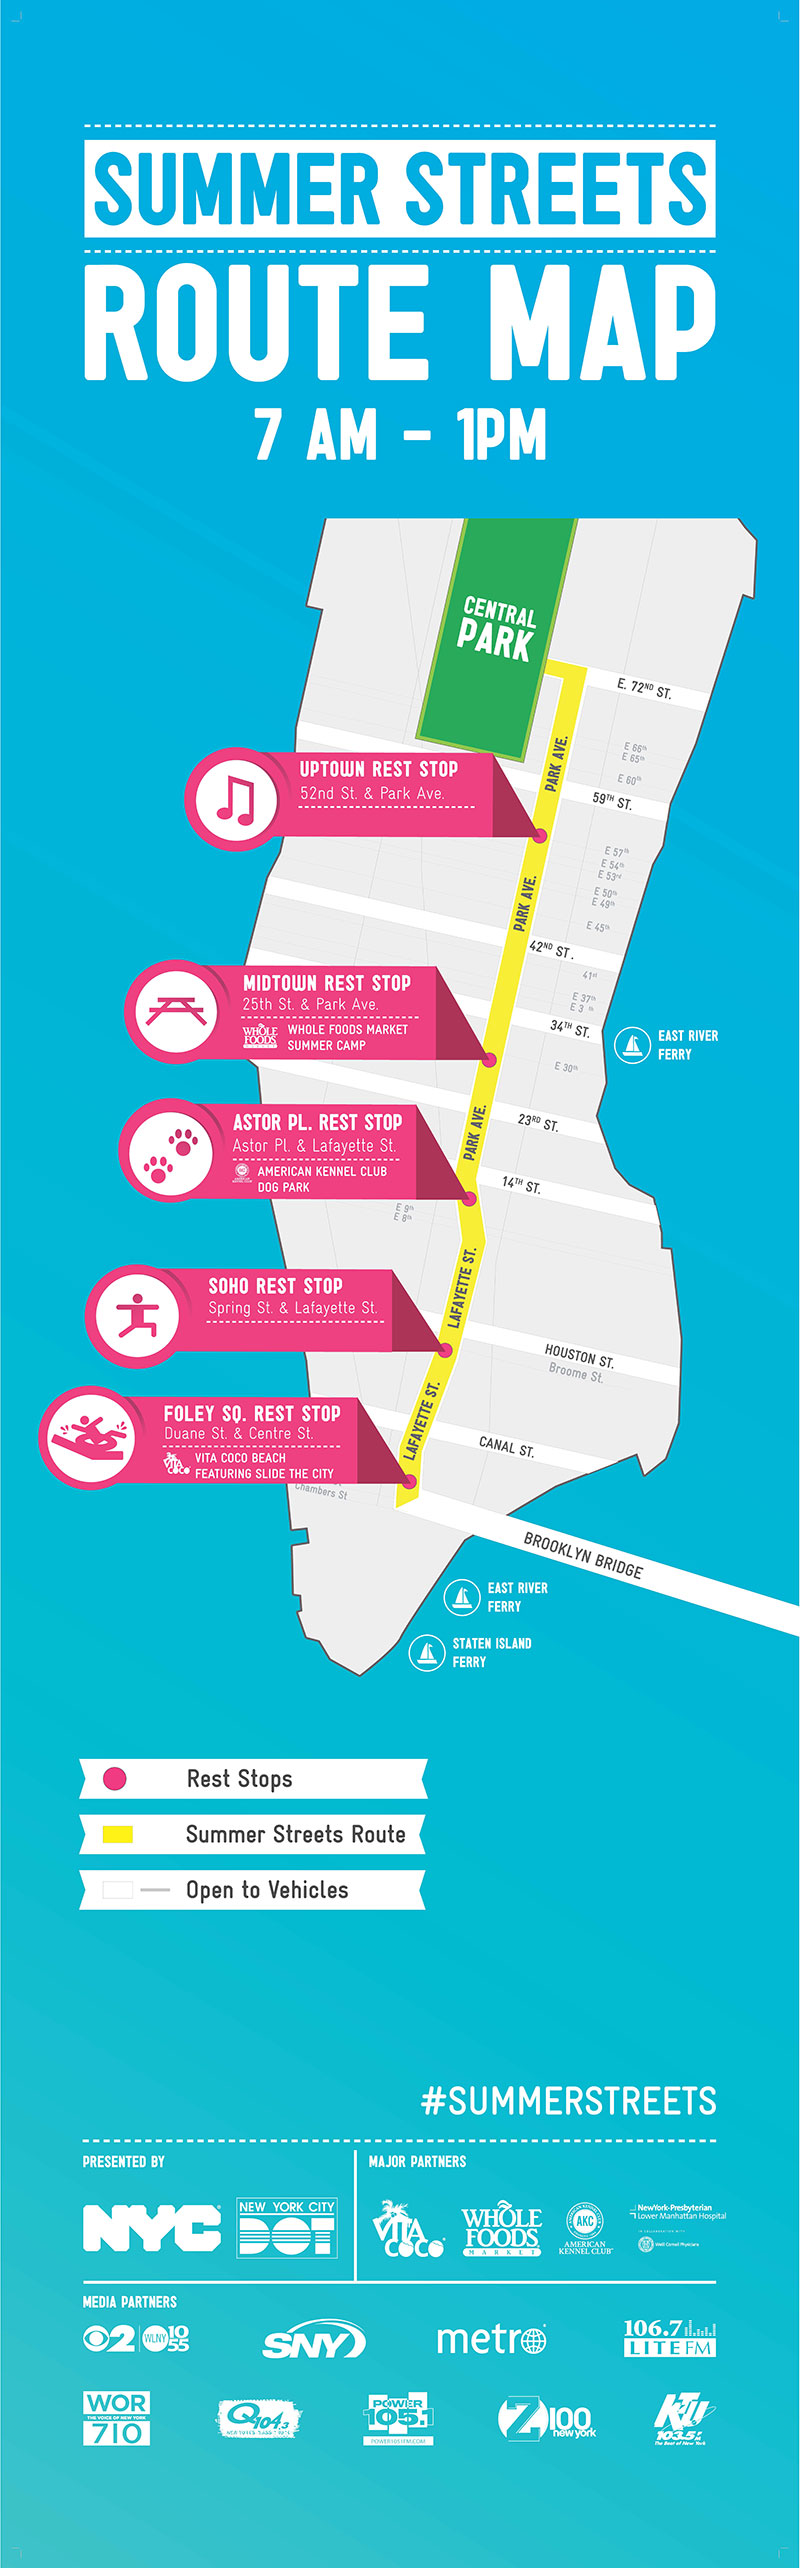 New York City Summer Streets Route Map.  Courtesy of the New York City Department of Transportation.